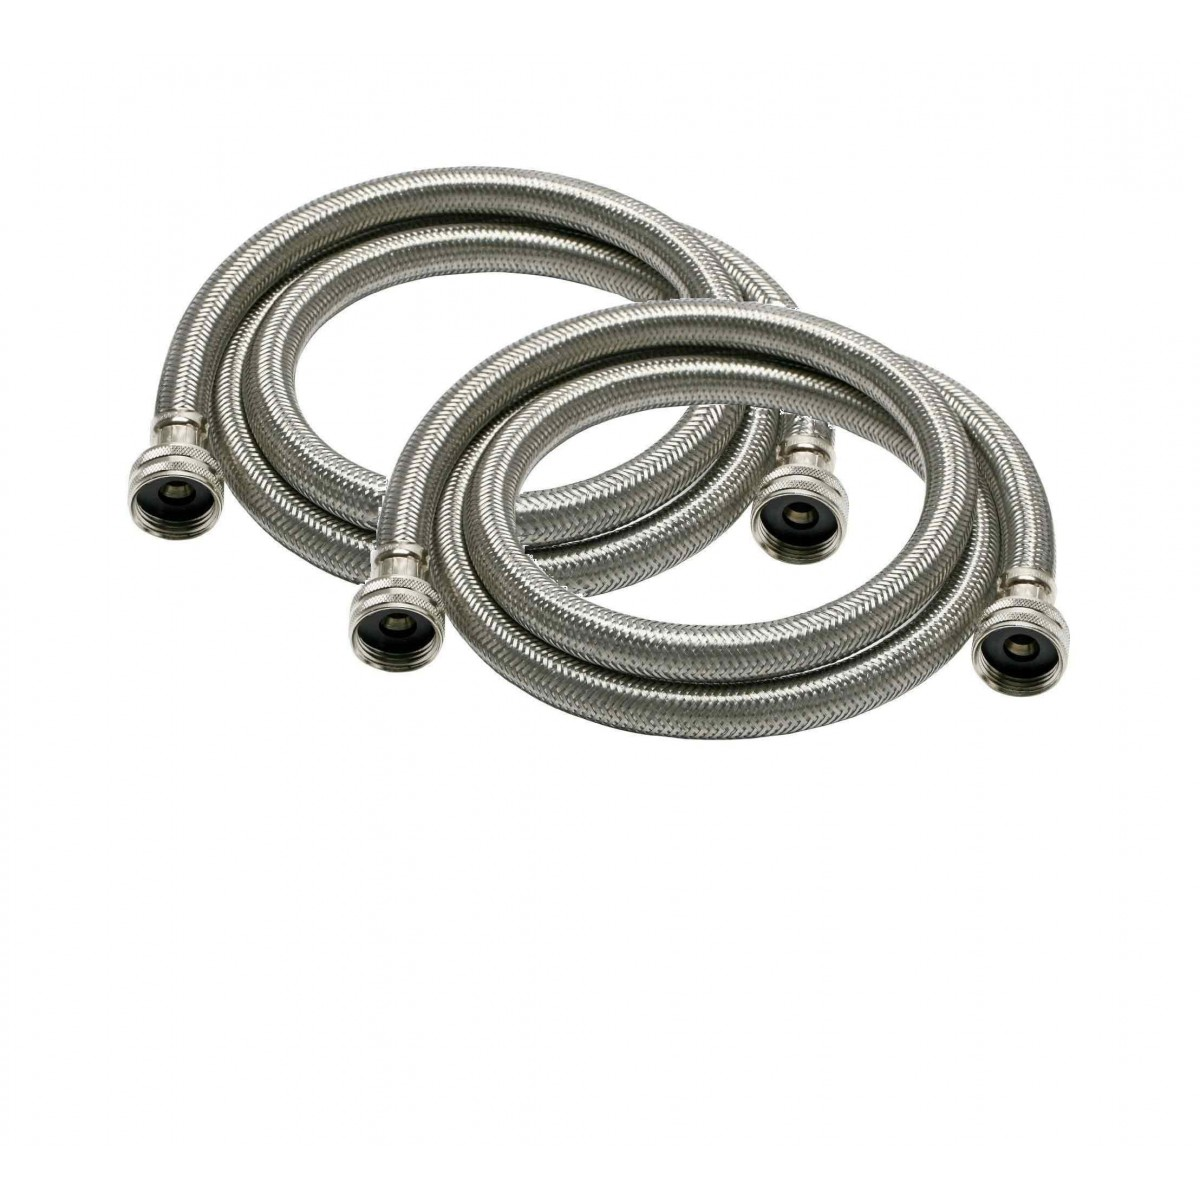 braided stainless steel 6 foot 3 4 inch fgh fht washer machine hoses by tier1 2 pack. Black Bedroom Furniture Sets. Home Design Ideas